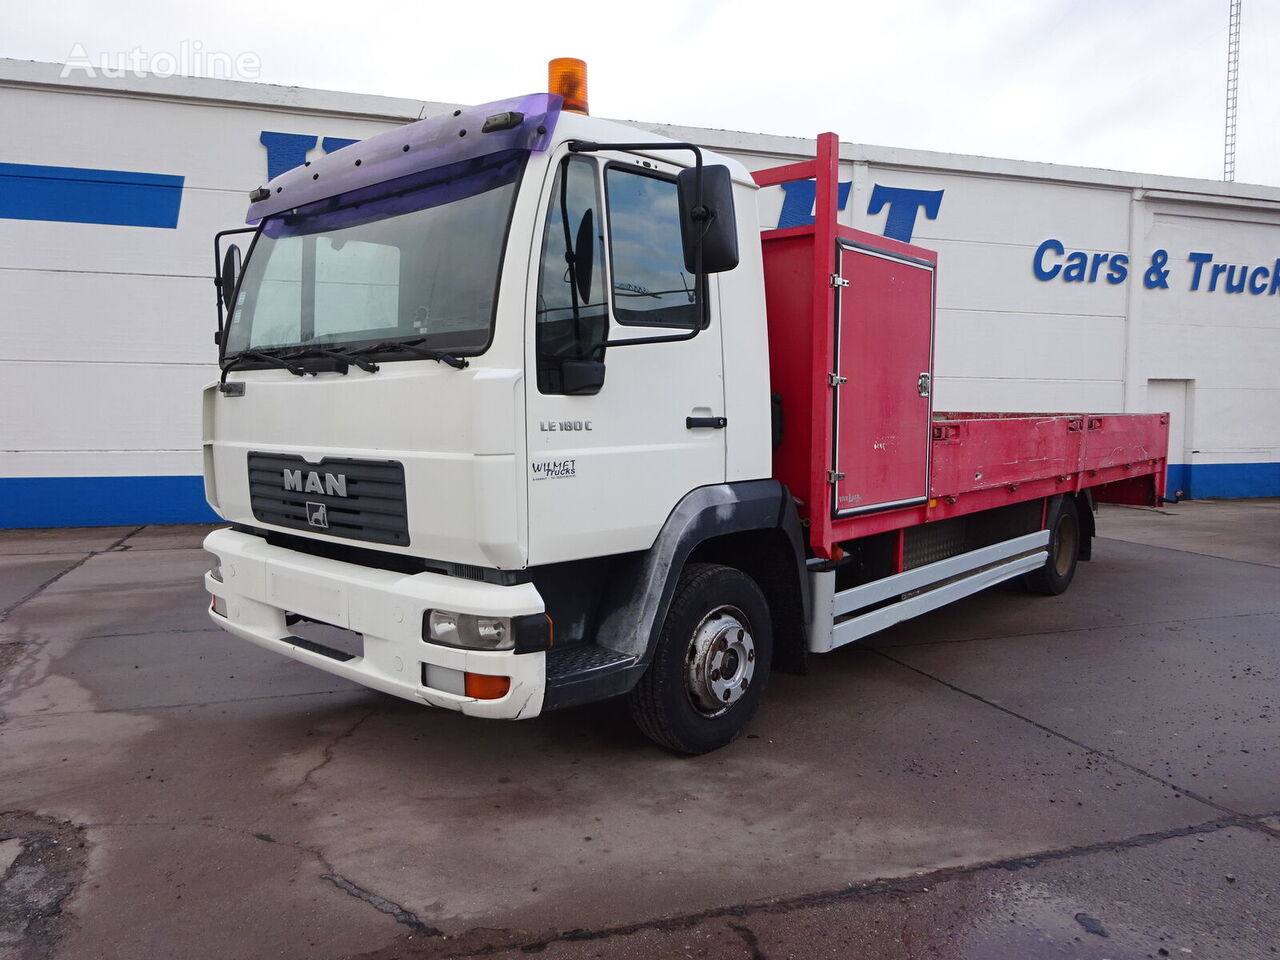 MAN LE 180 C flatbed truck